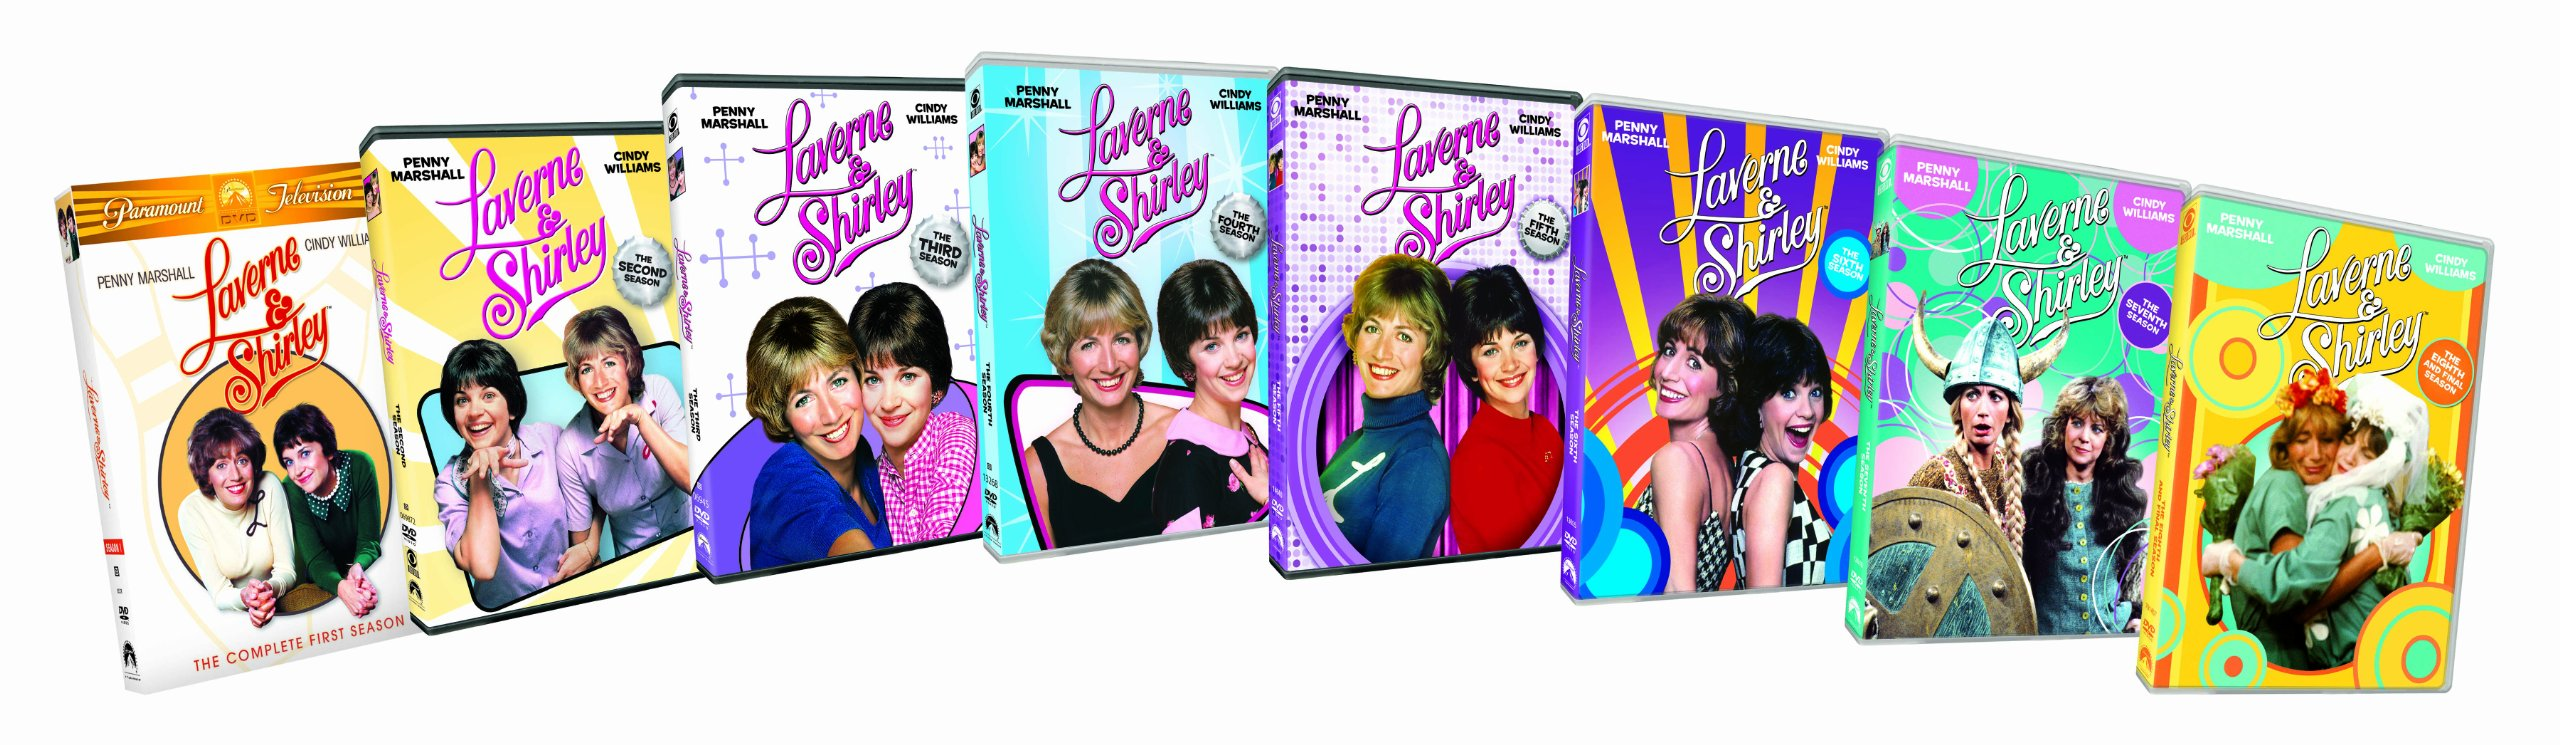 Laverne & Shirley: Complete Series Pack by Bottle Cap Co.